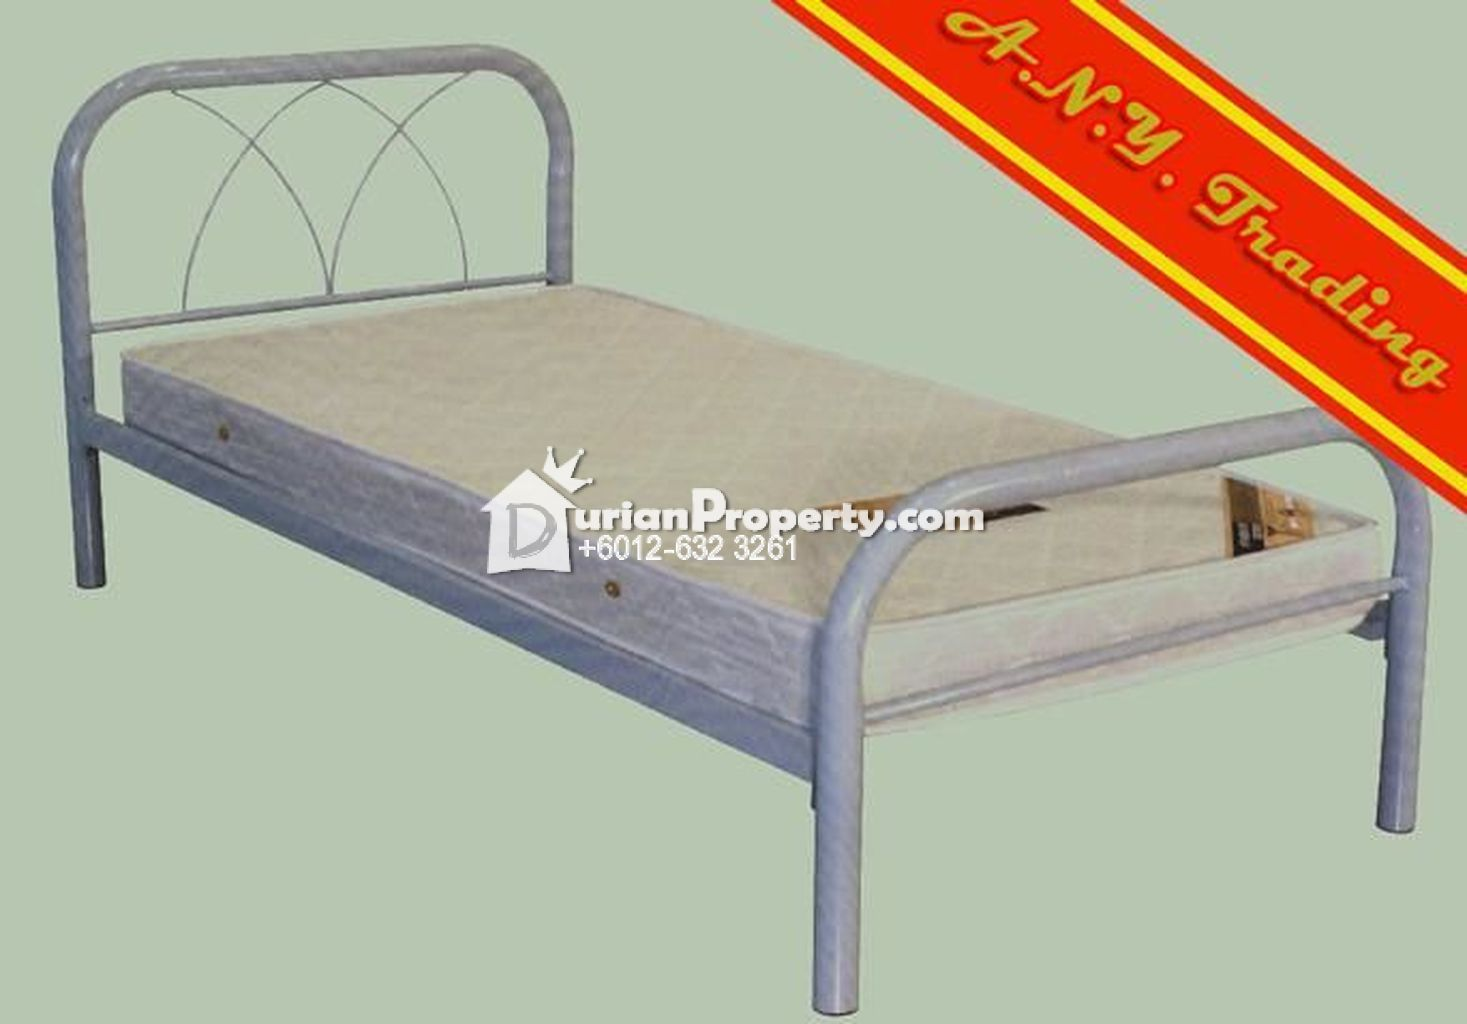 Bed with Matress For Sale